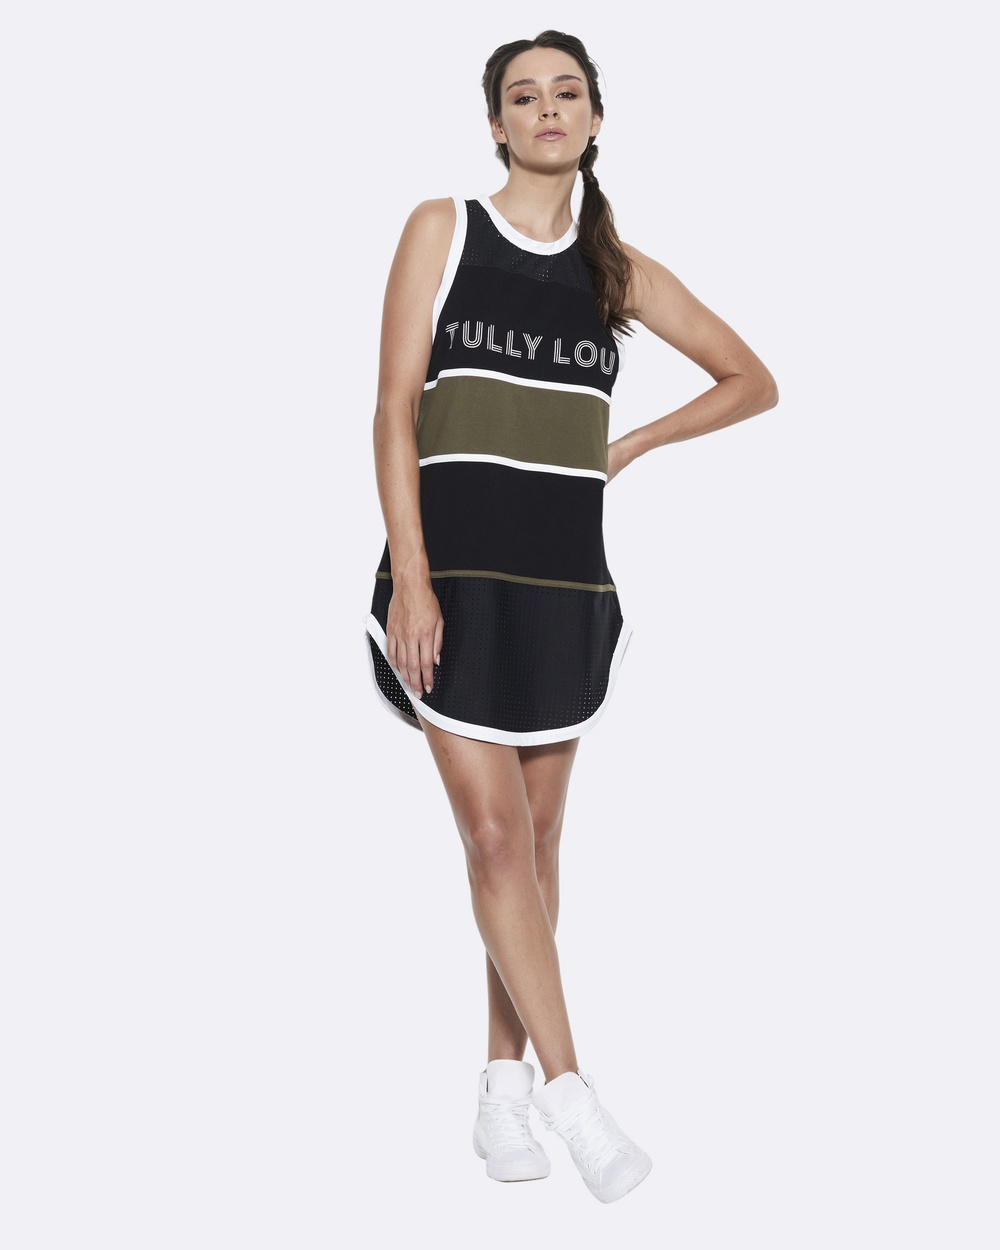 Tully Lou Army 76er's Dress